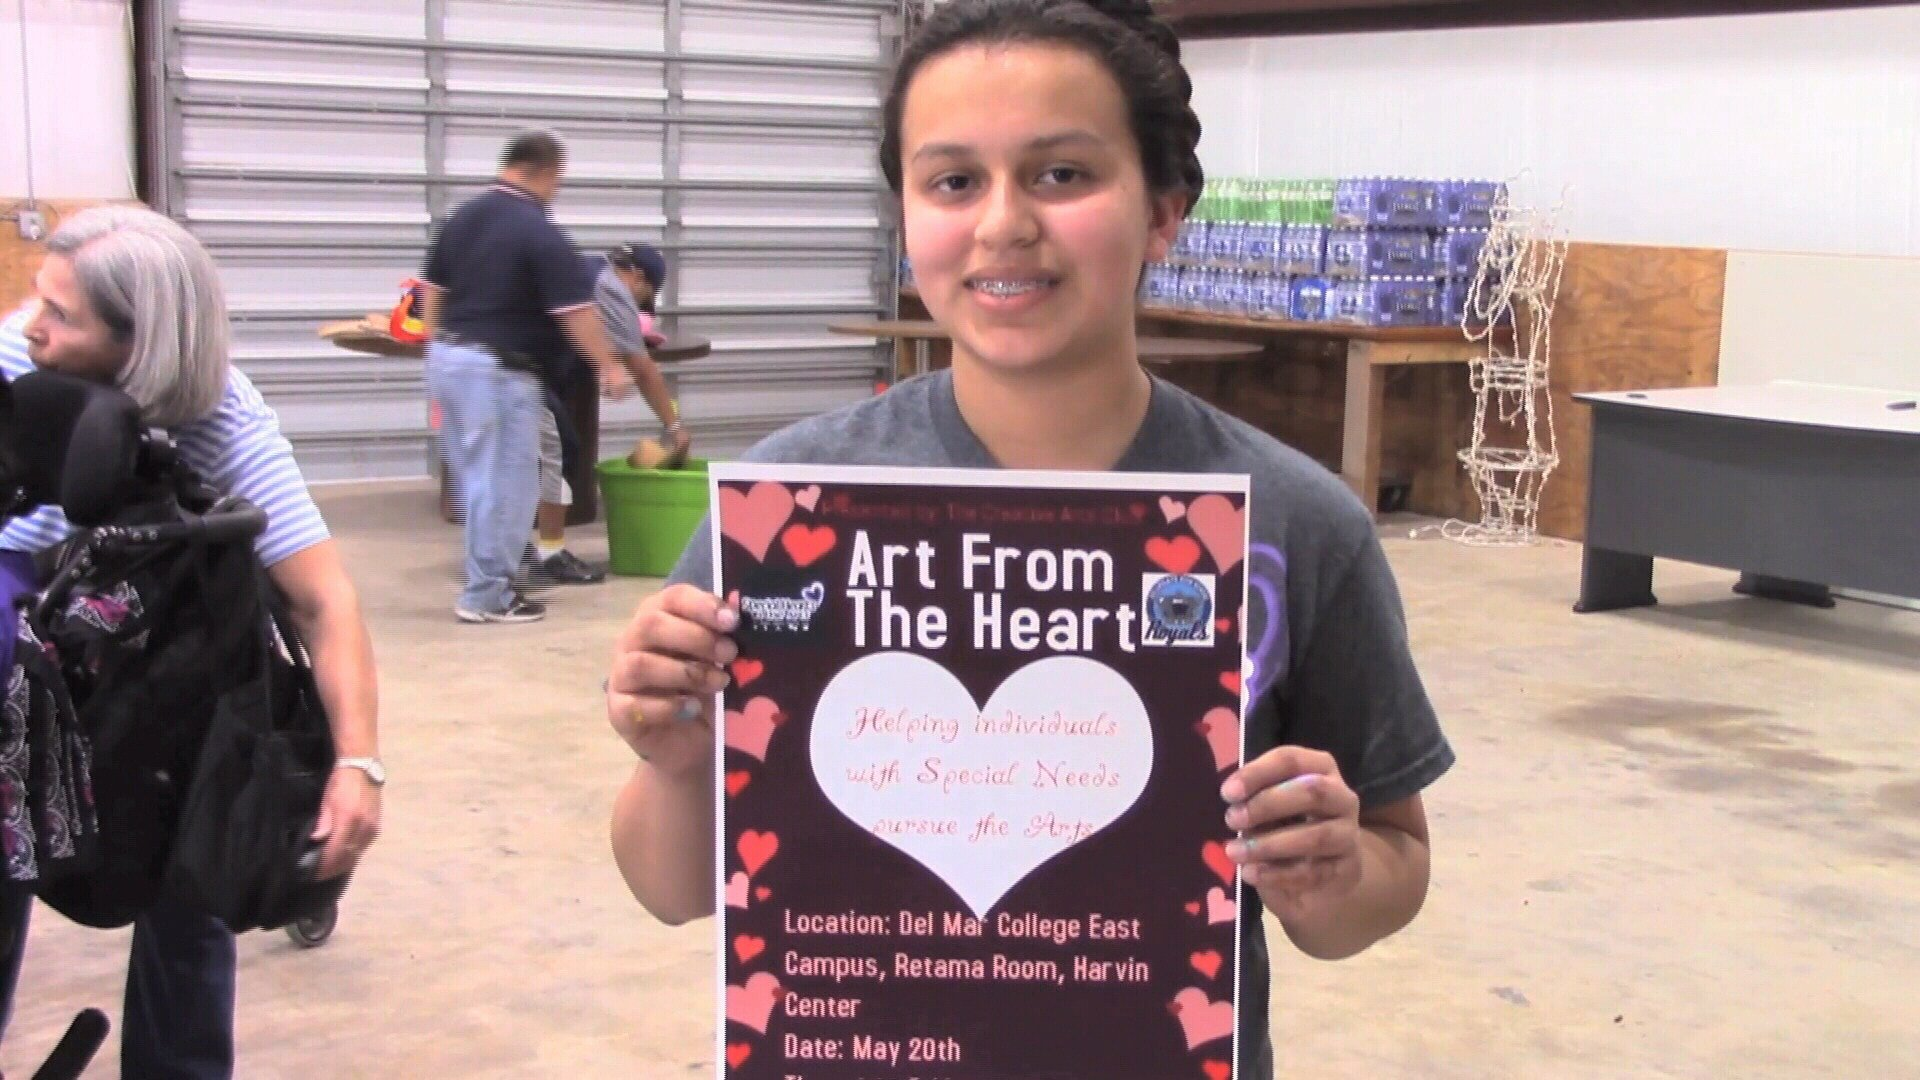 Volunteer Ezra Nicolina Garza organized a fundraiser coming up May 20th at Del Mar College